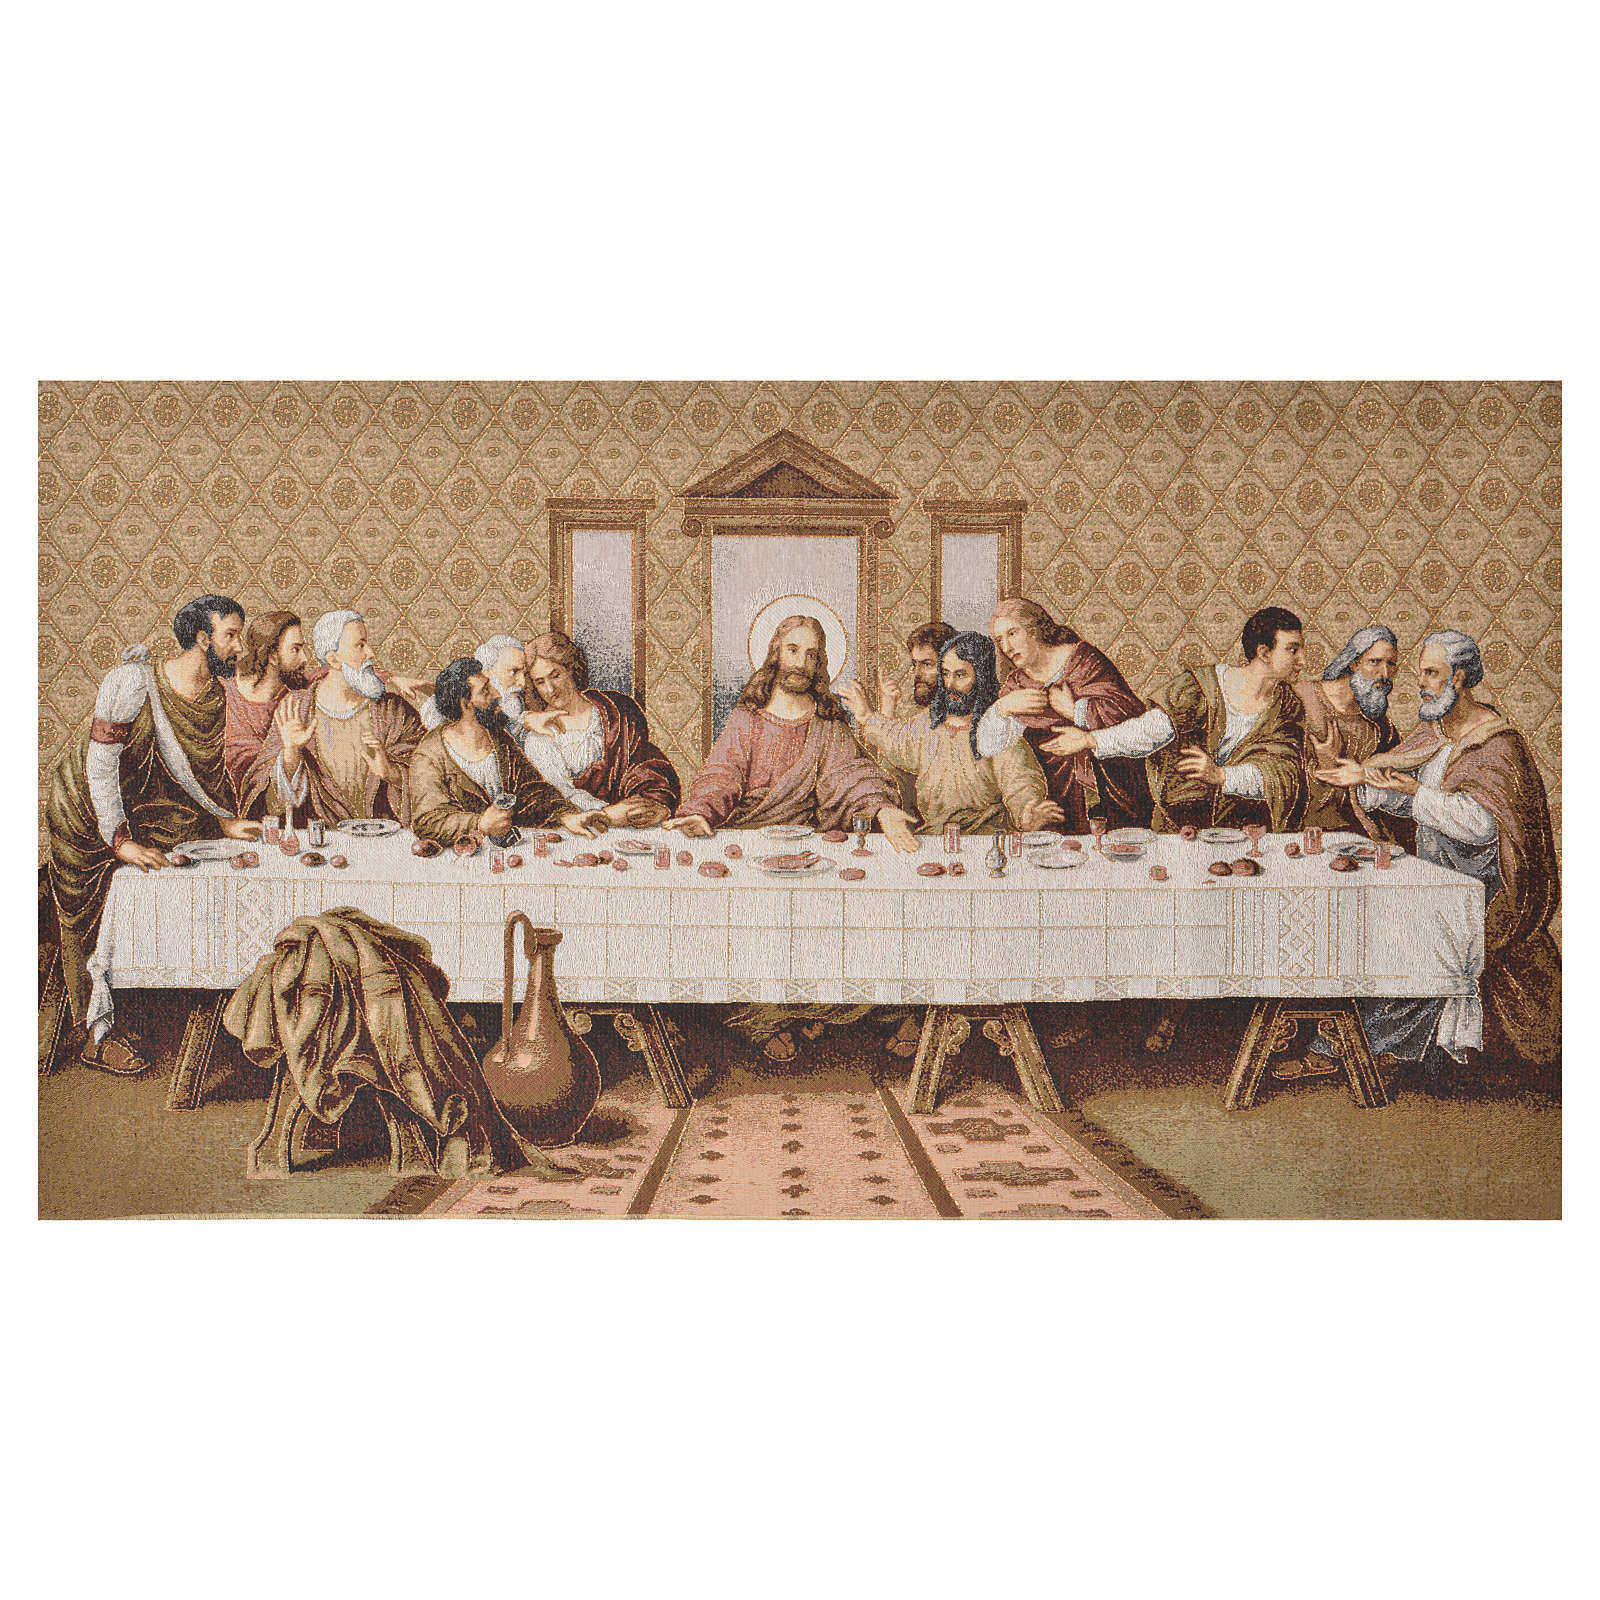 Tapestry Last Supper 72 x 130cm 3